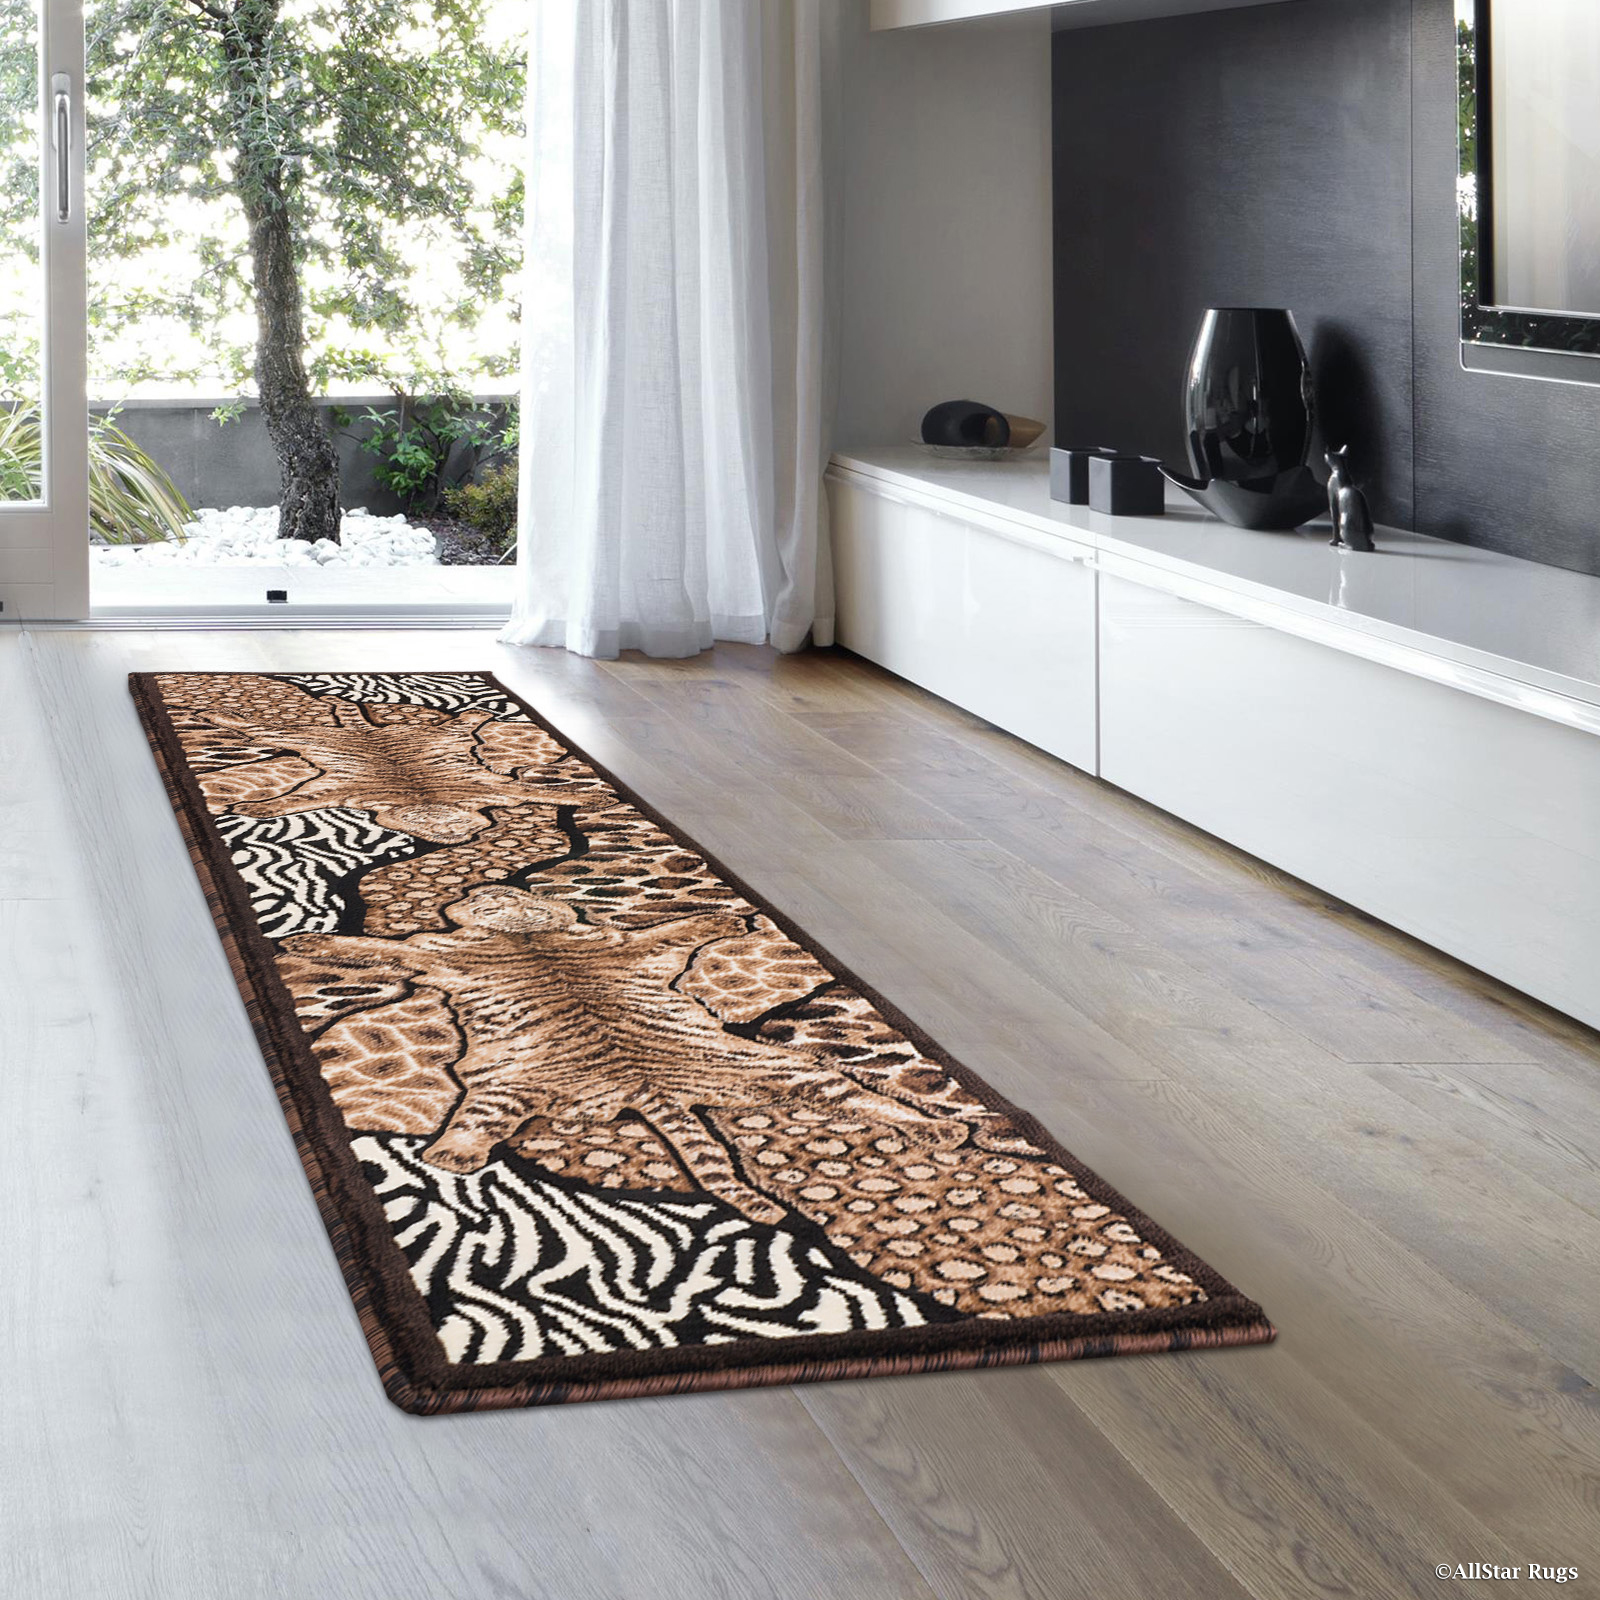 "Allstar Black High Density Double Shot Drop-Stitch Carving Exotic Animal Skin and Nature. Safari Woven Area Rug (2' 0"" x 7' 2"")"